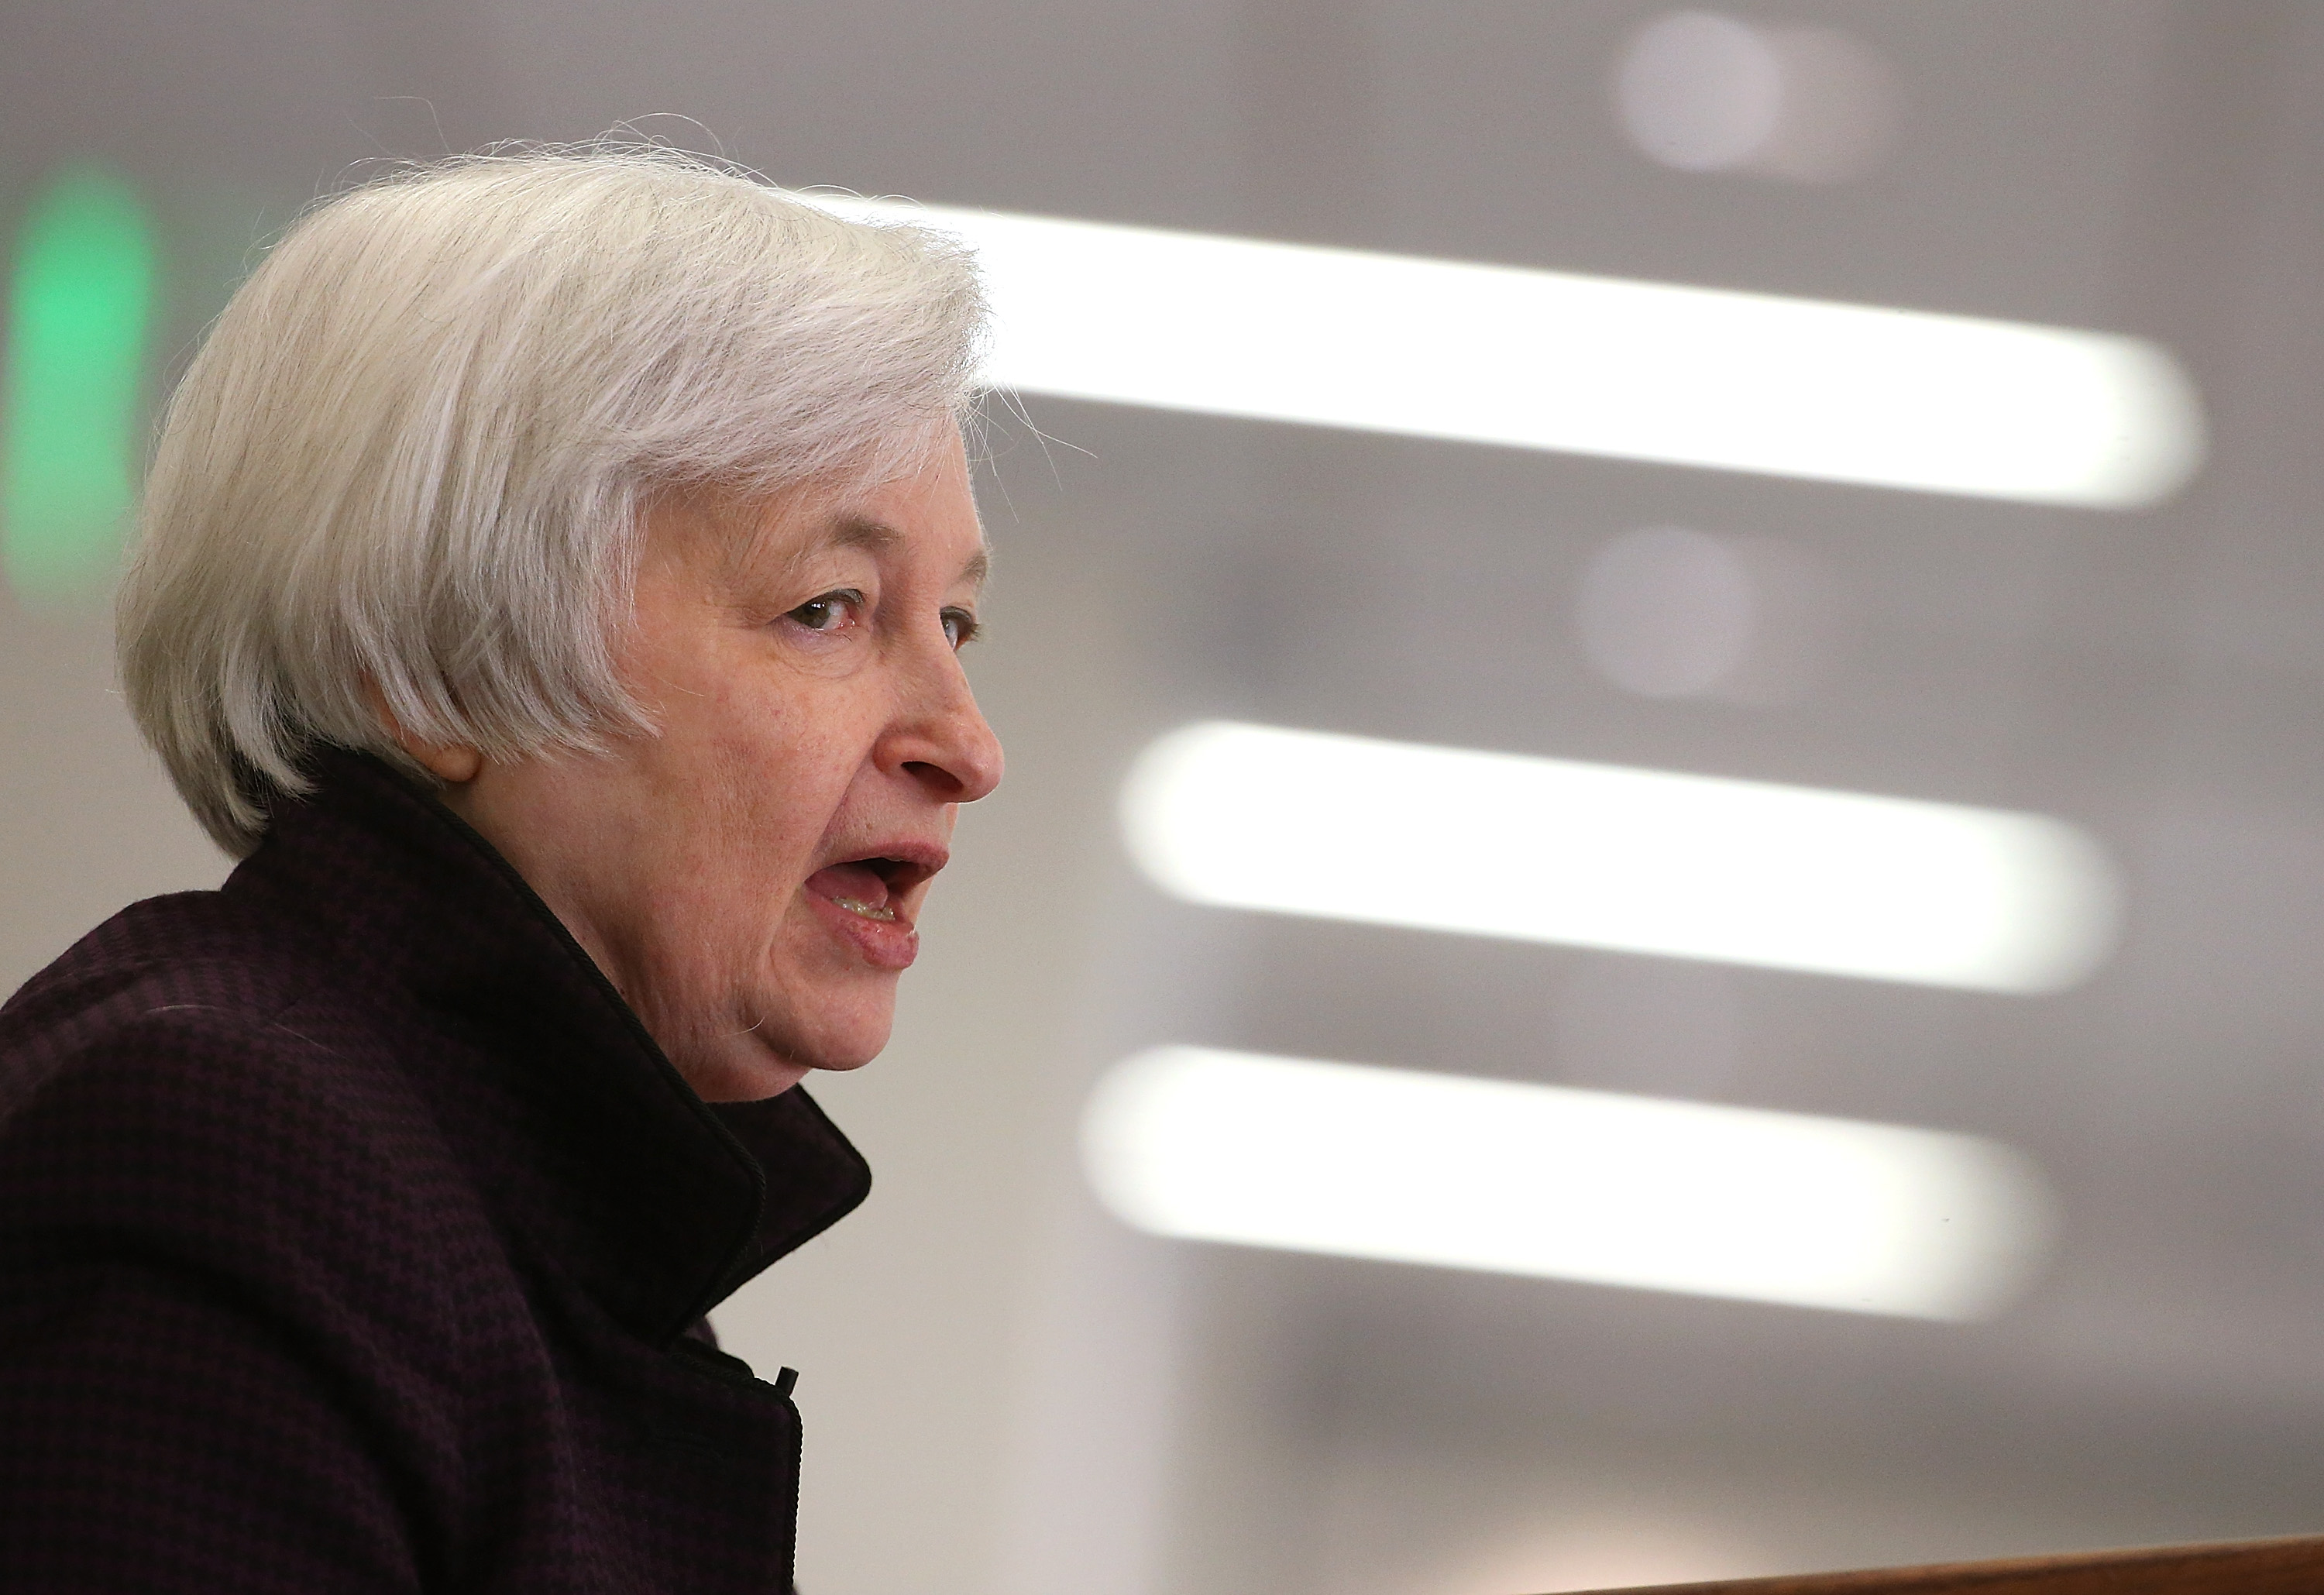 Yellen globalization makes higher education increasingly important wall street journal - Yellen Discusses Monetary Policy At Federal Reserve Bank In San Francisco